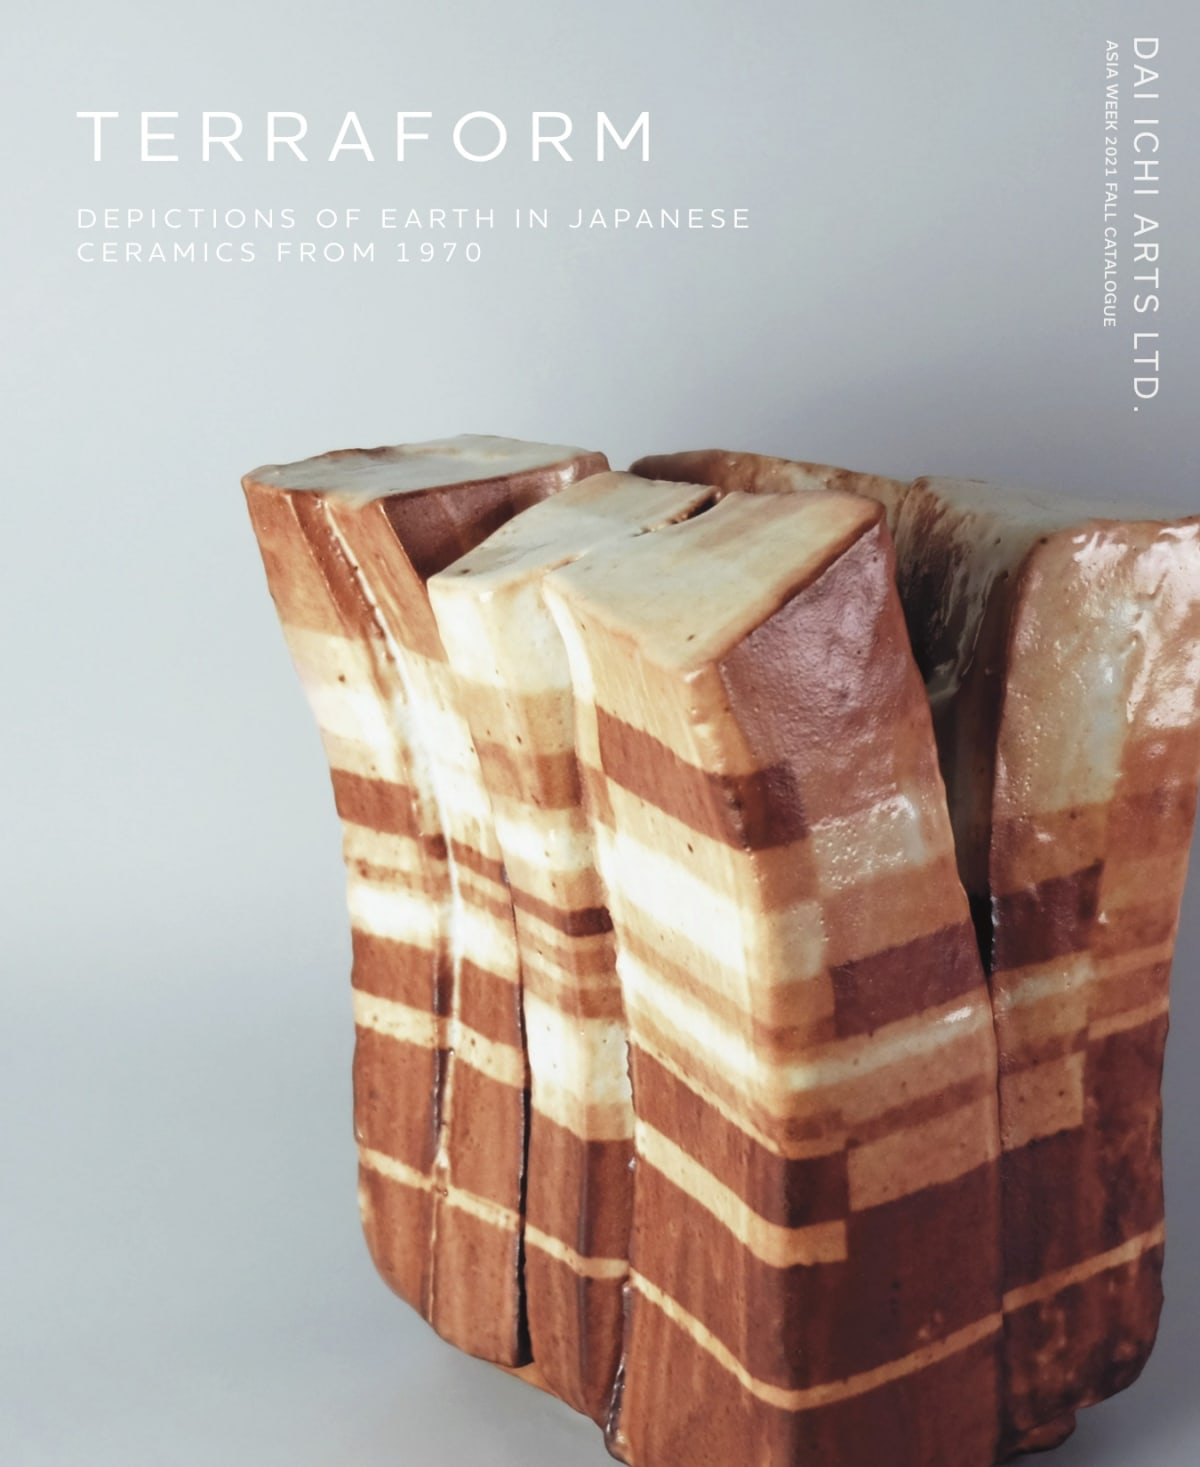 Terraform: Depictions of Earth in Japanese Ceramics from 1970